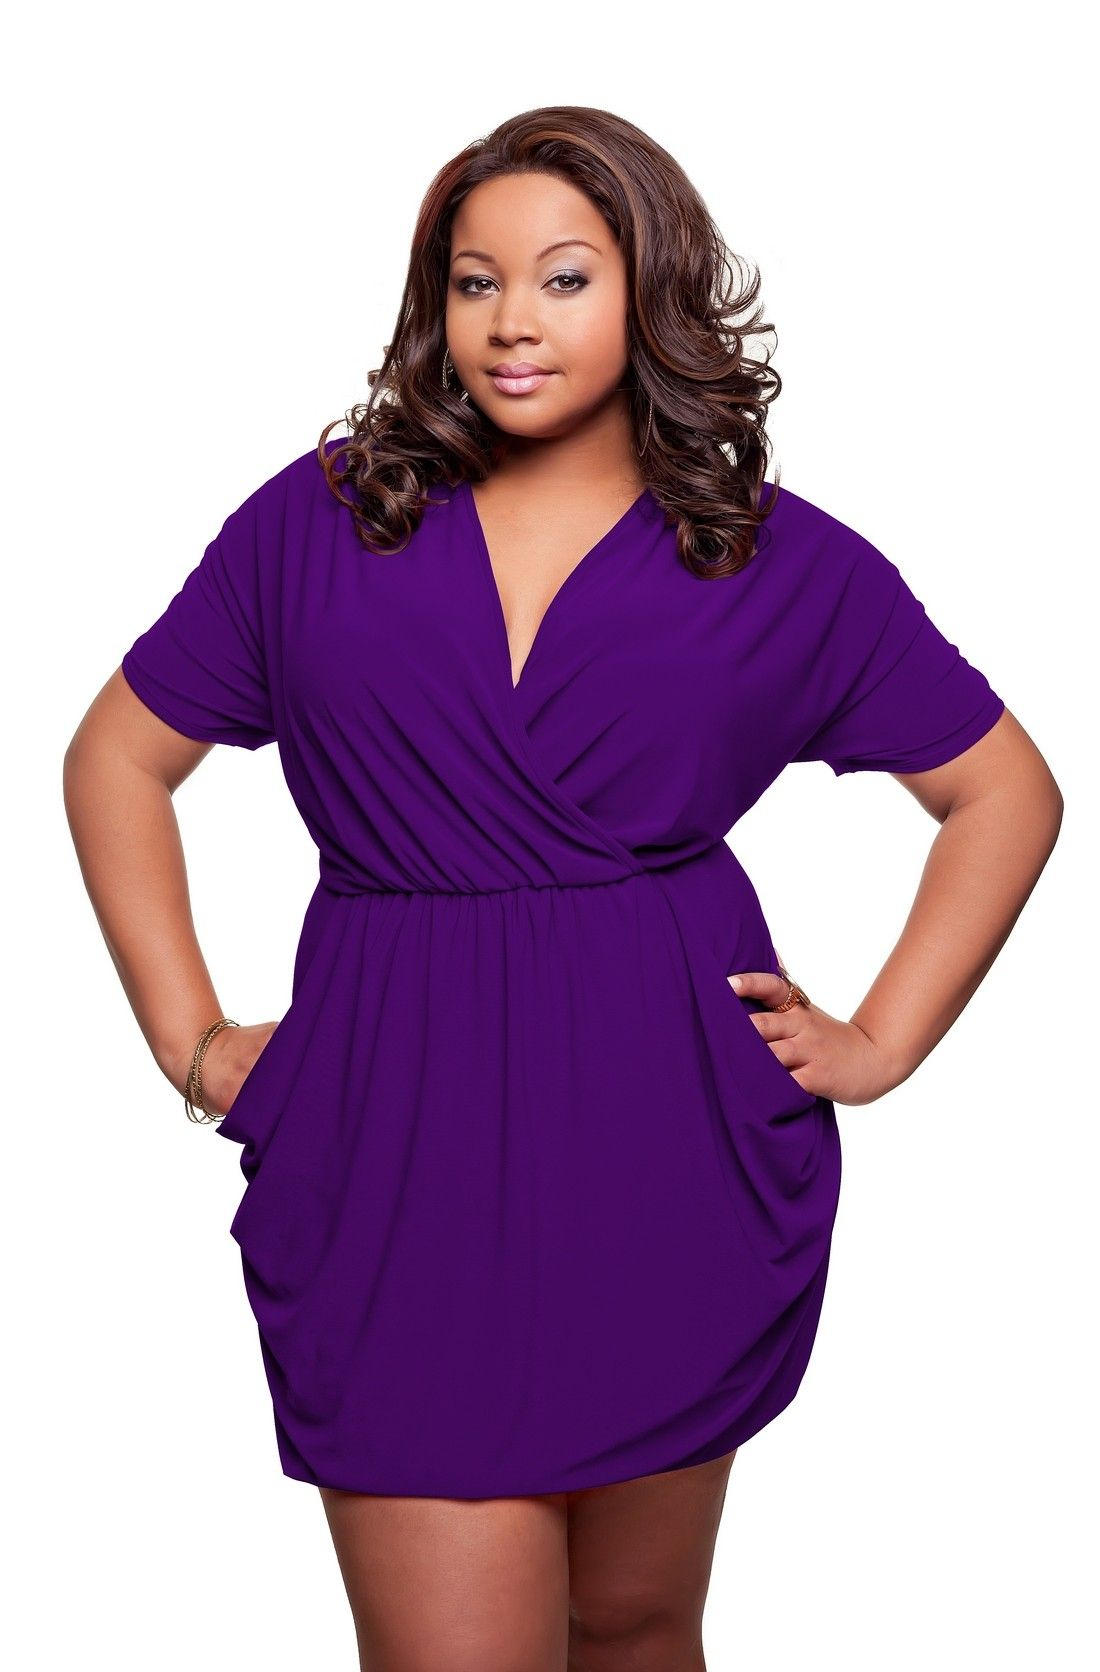 69 Plus Size Length Adjustable Dress In Purple And Worn Short Plus